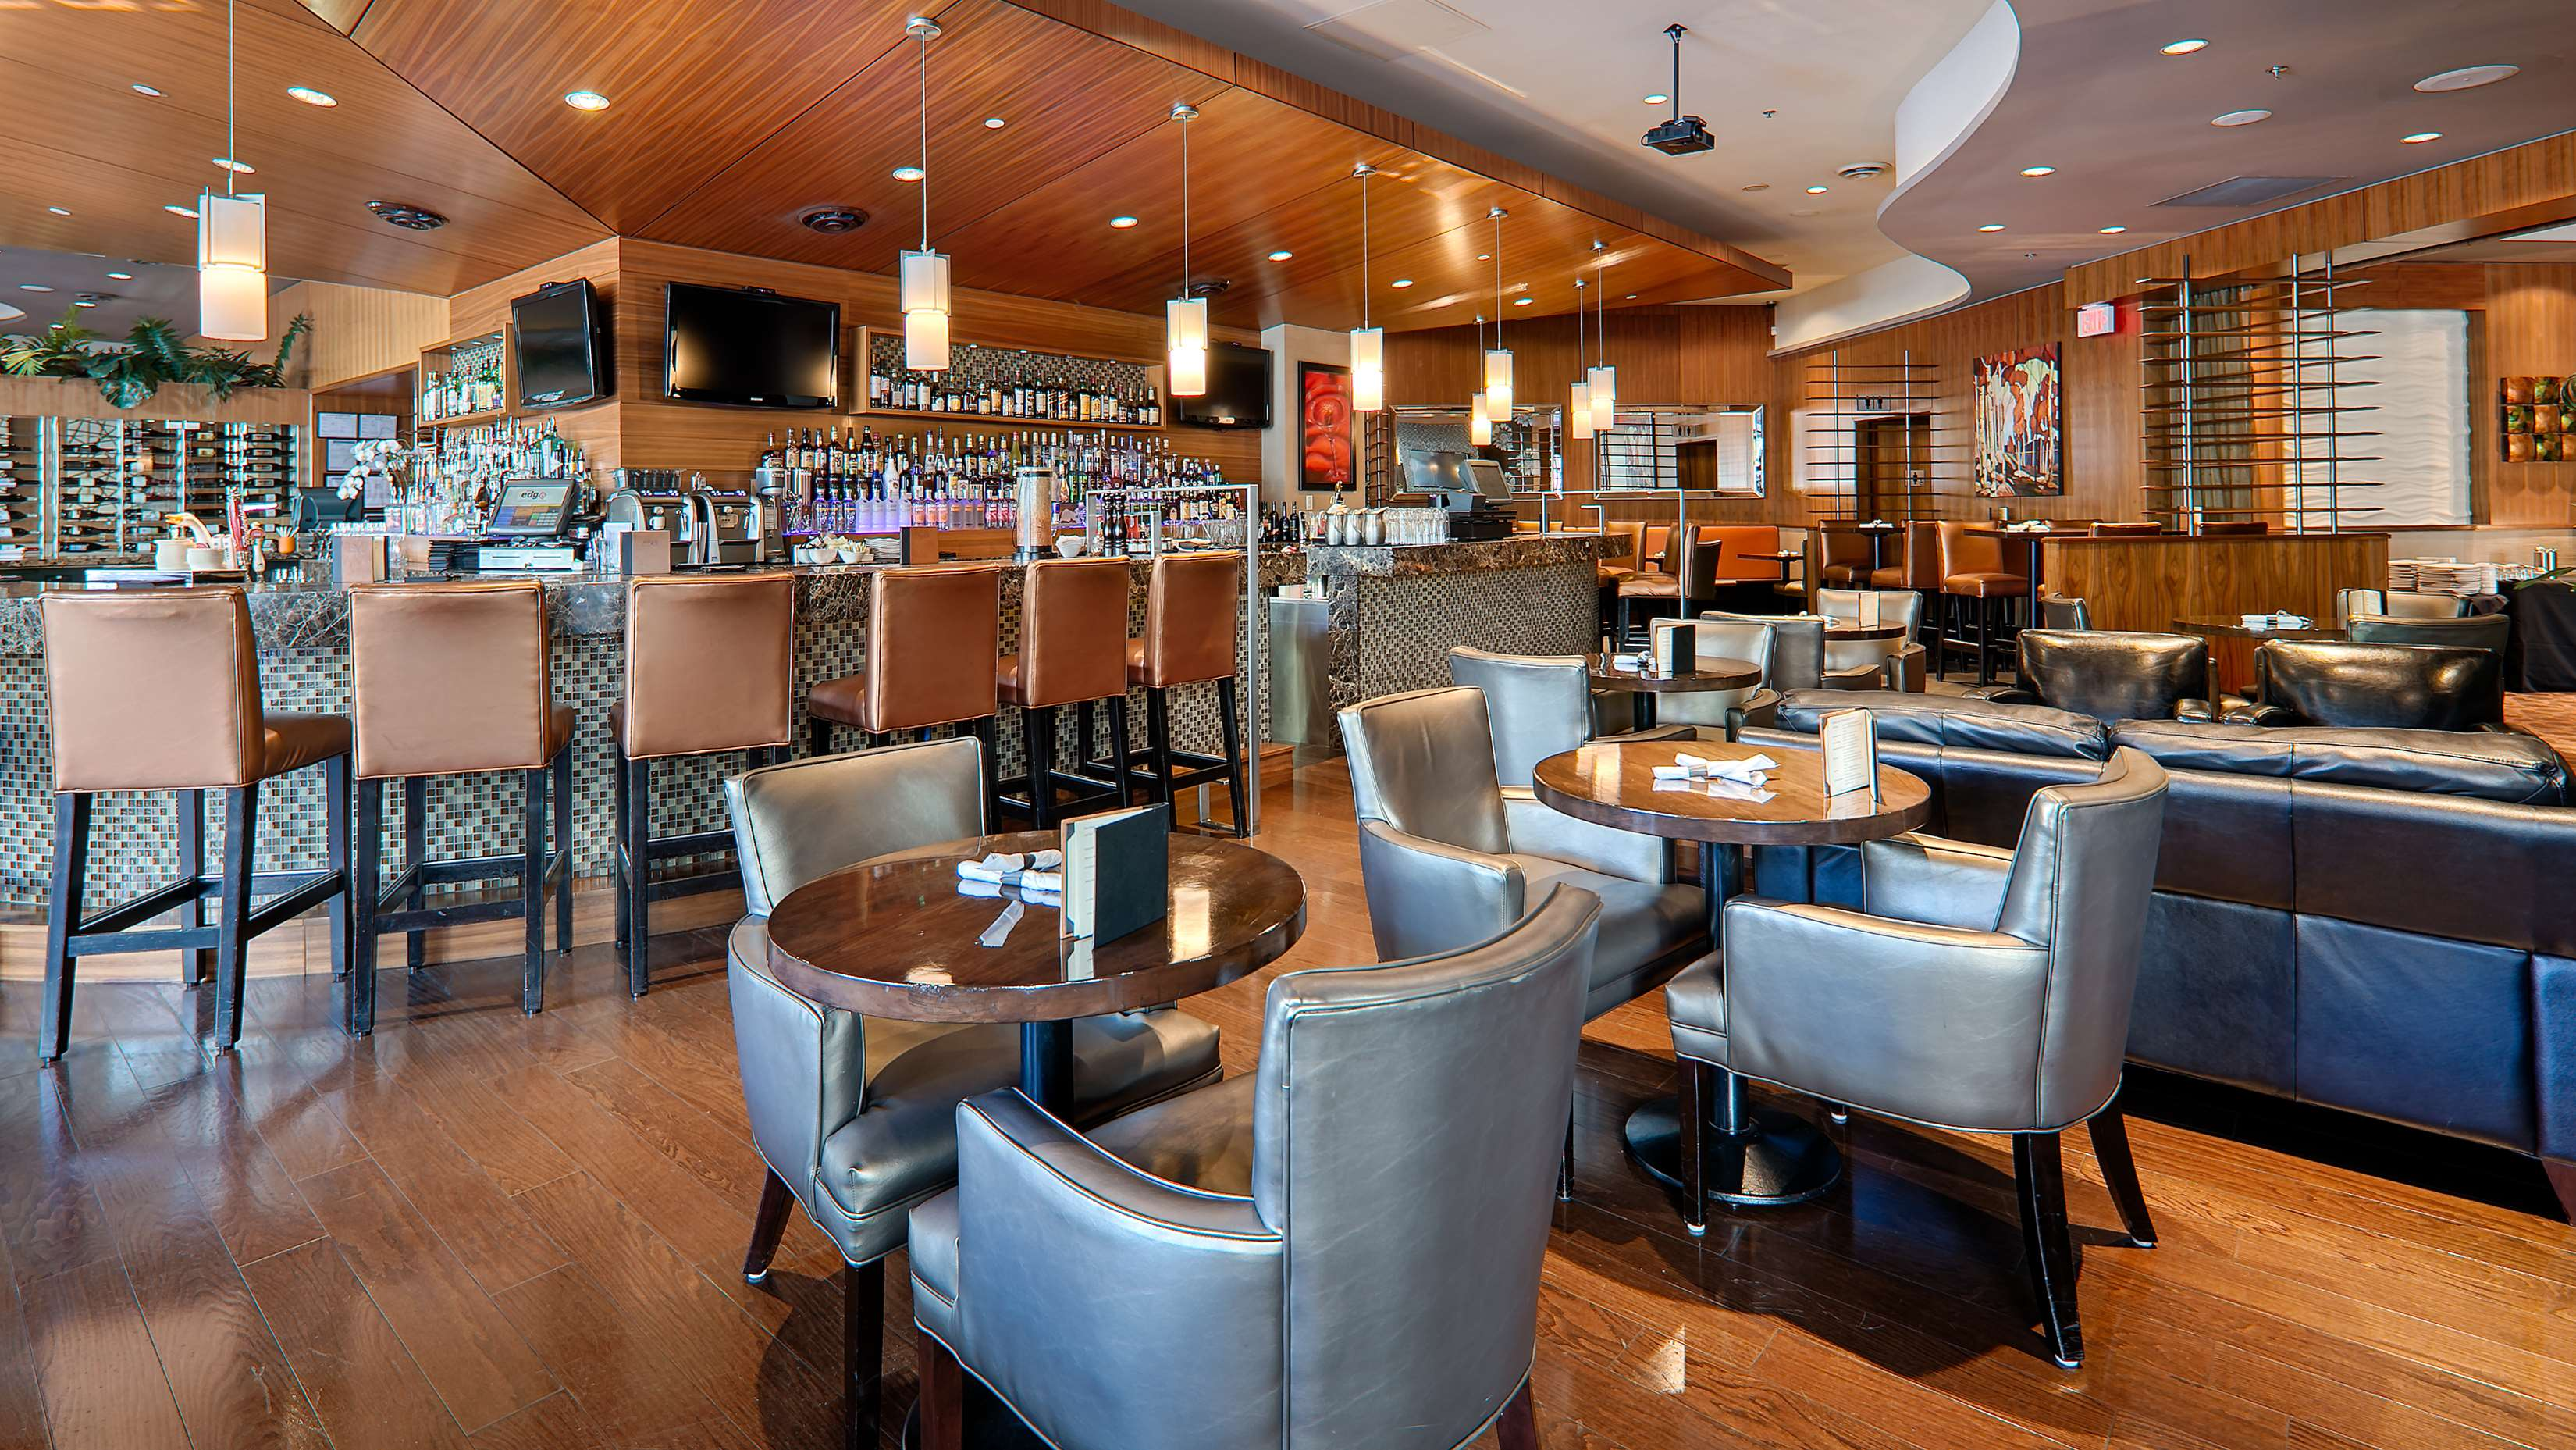 Best Western Plus Chateau Granville Hotel & Suites & Conference Ctr. in Vancouver: Bar/Lounge